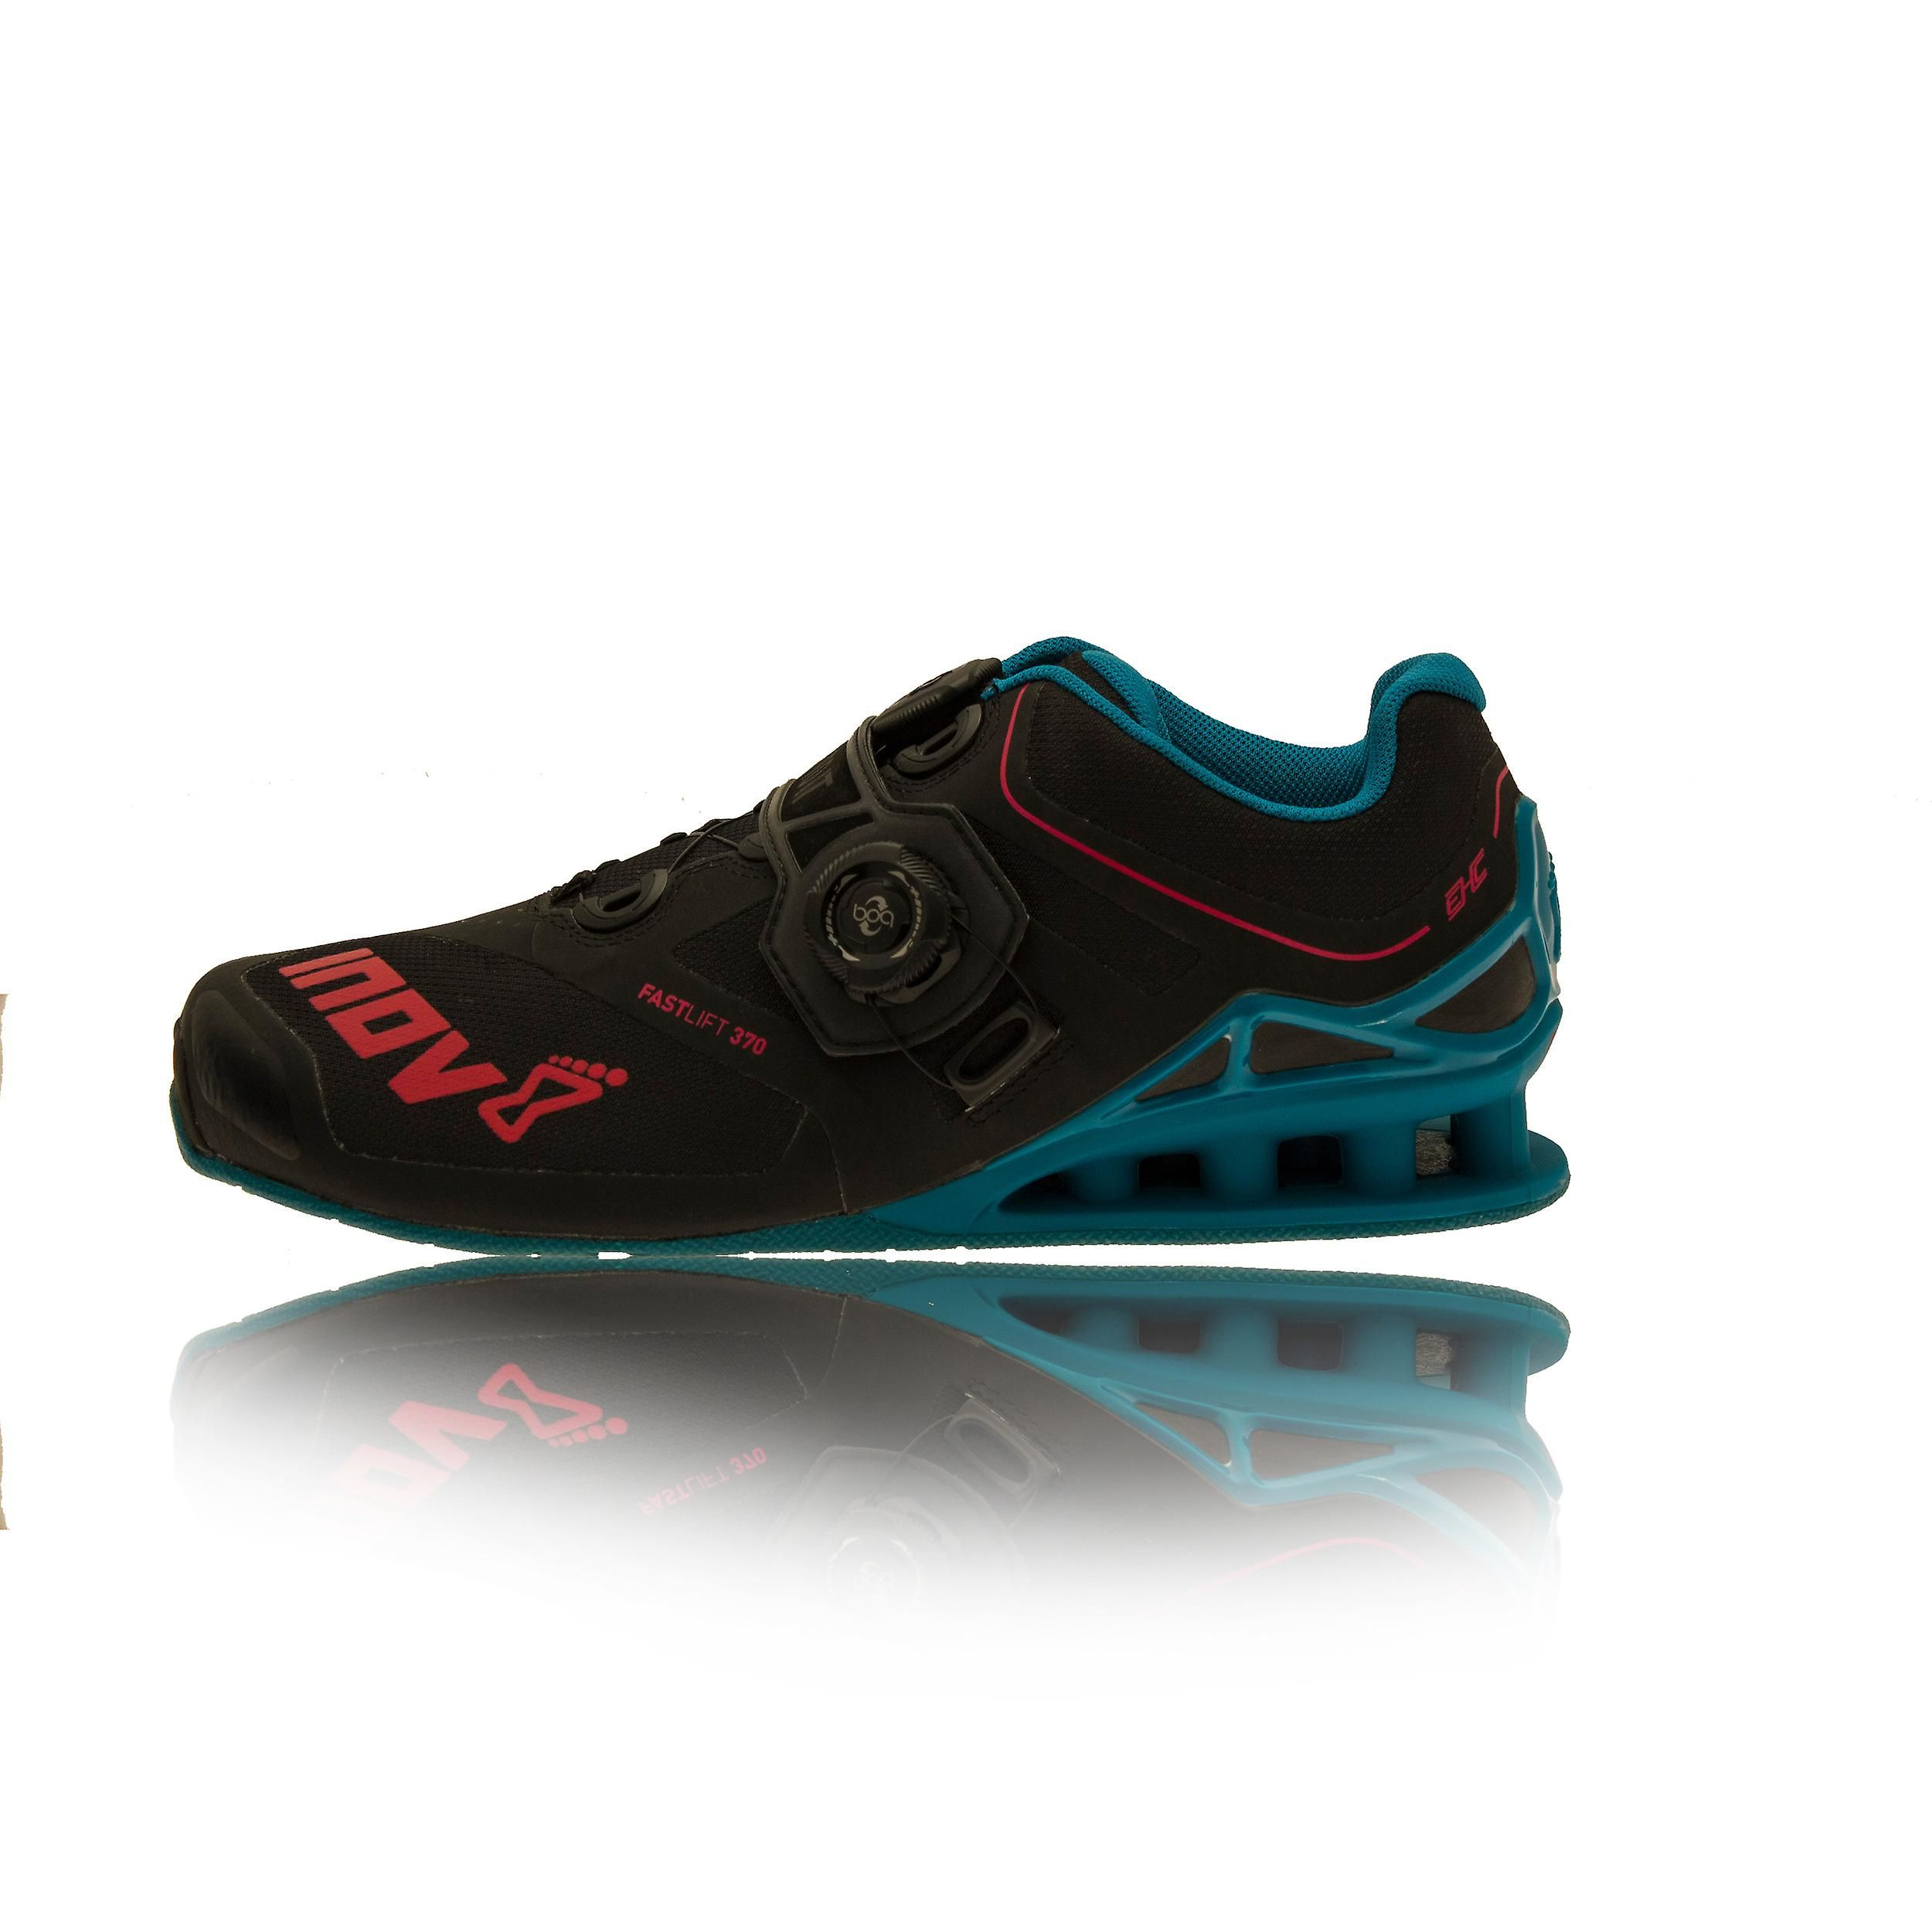 Inov8 Fast Lift 370 BOA Women's Weightlifting Shoes - AW16